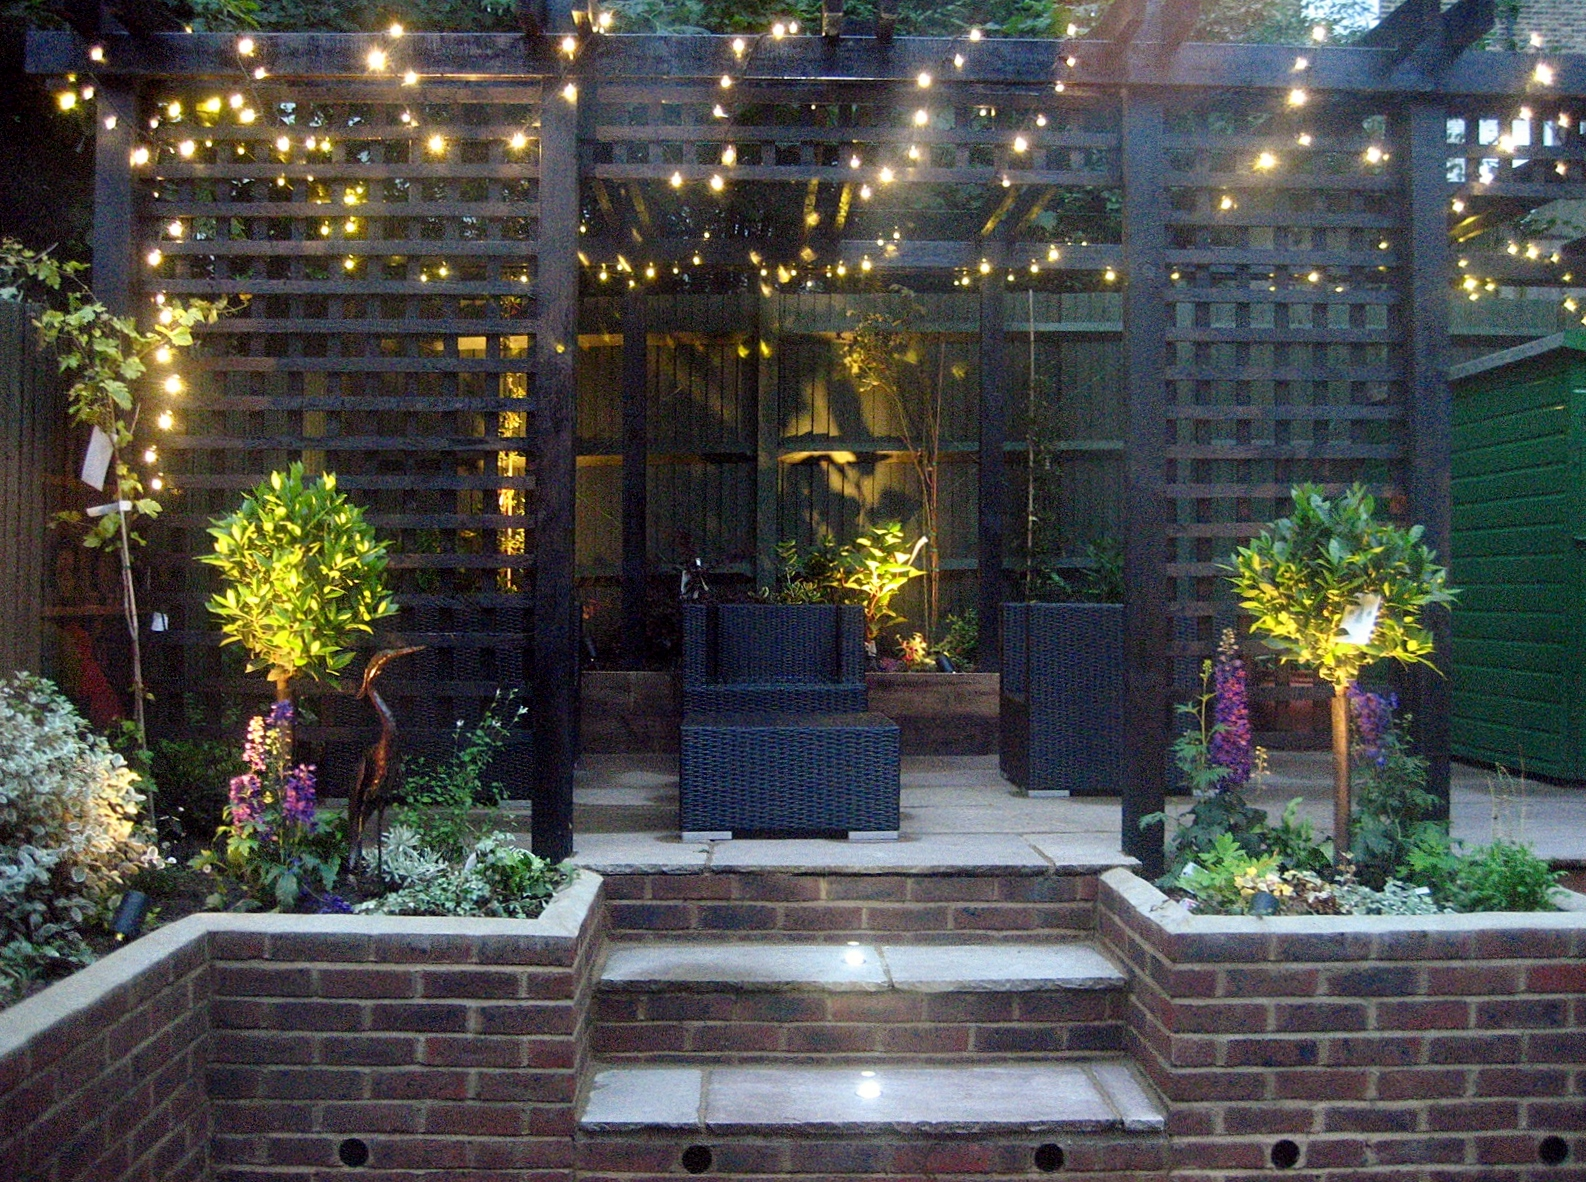 Landscape design london home landscaping for Landscape design london